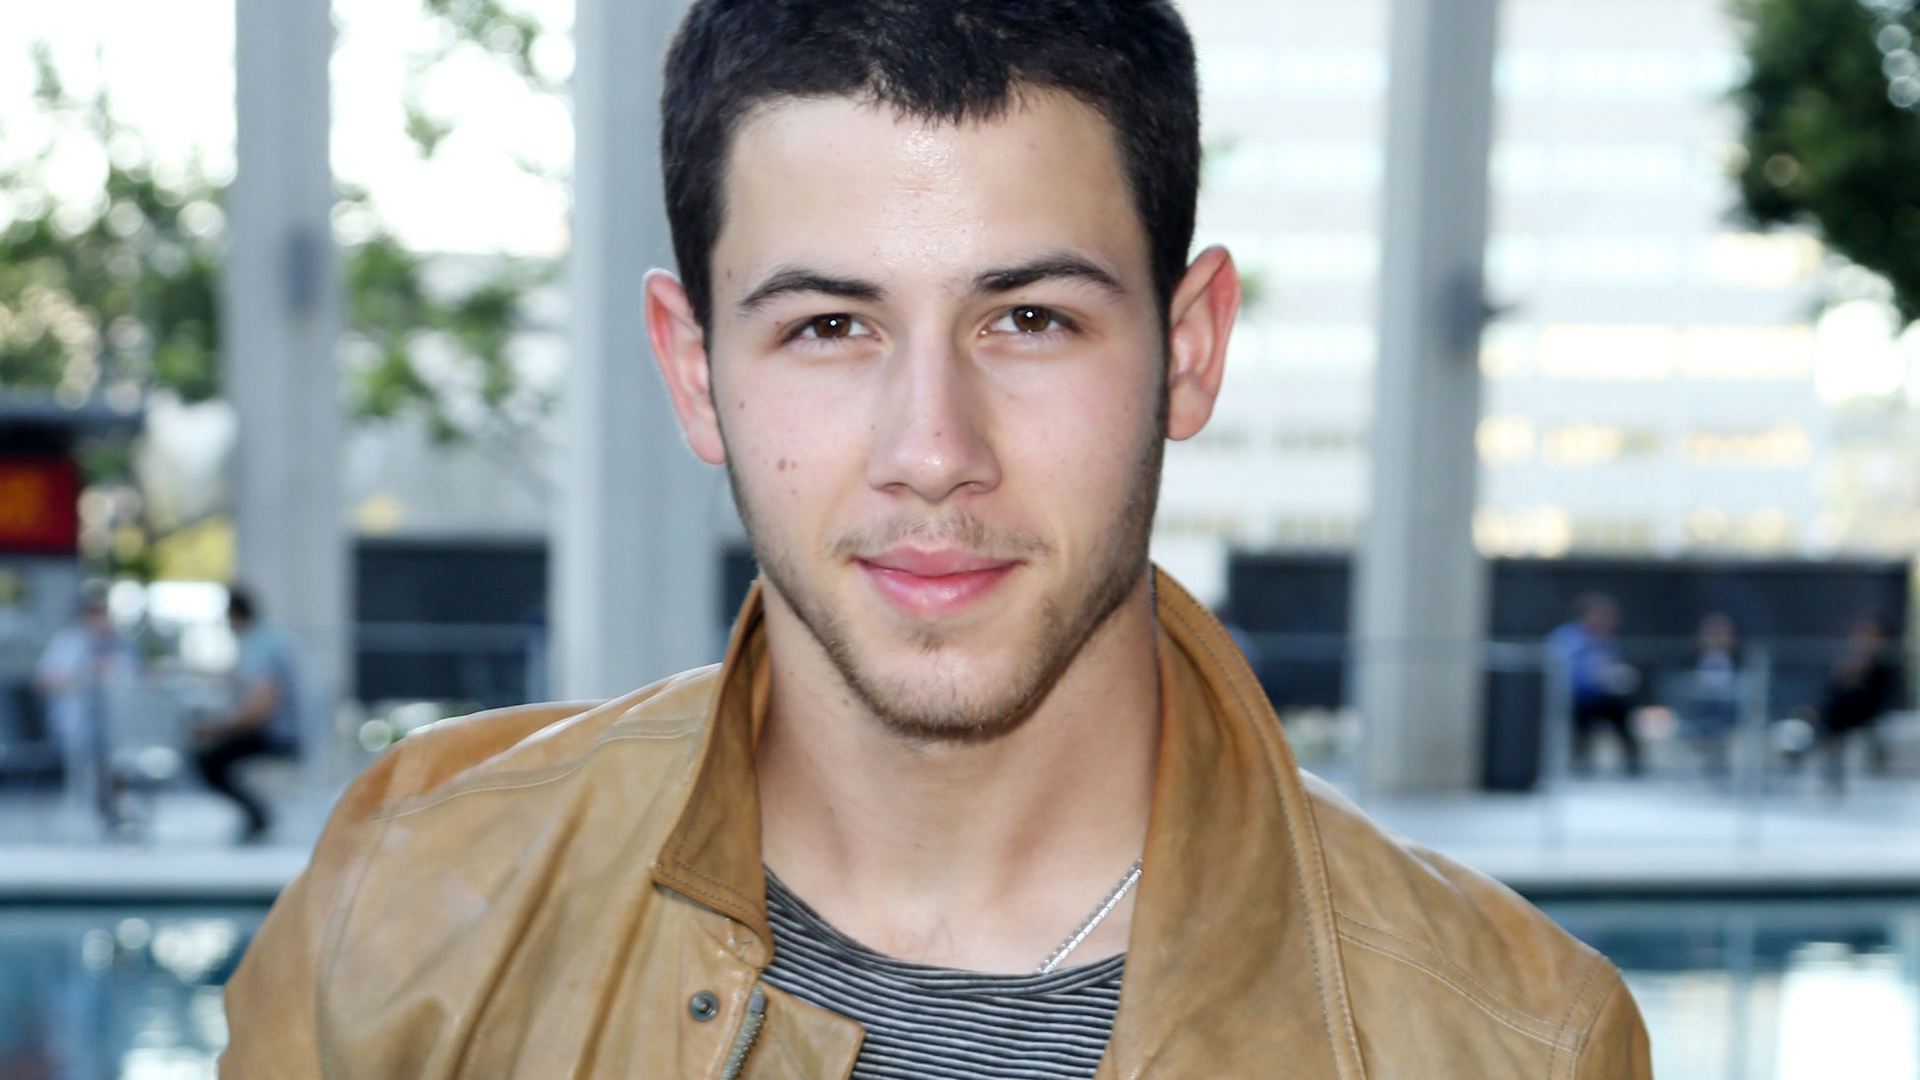 Nick Jonas to join the likes of Morgan Freeman and Stephen Fry and address the Oxford Union - The Celeb Culture